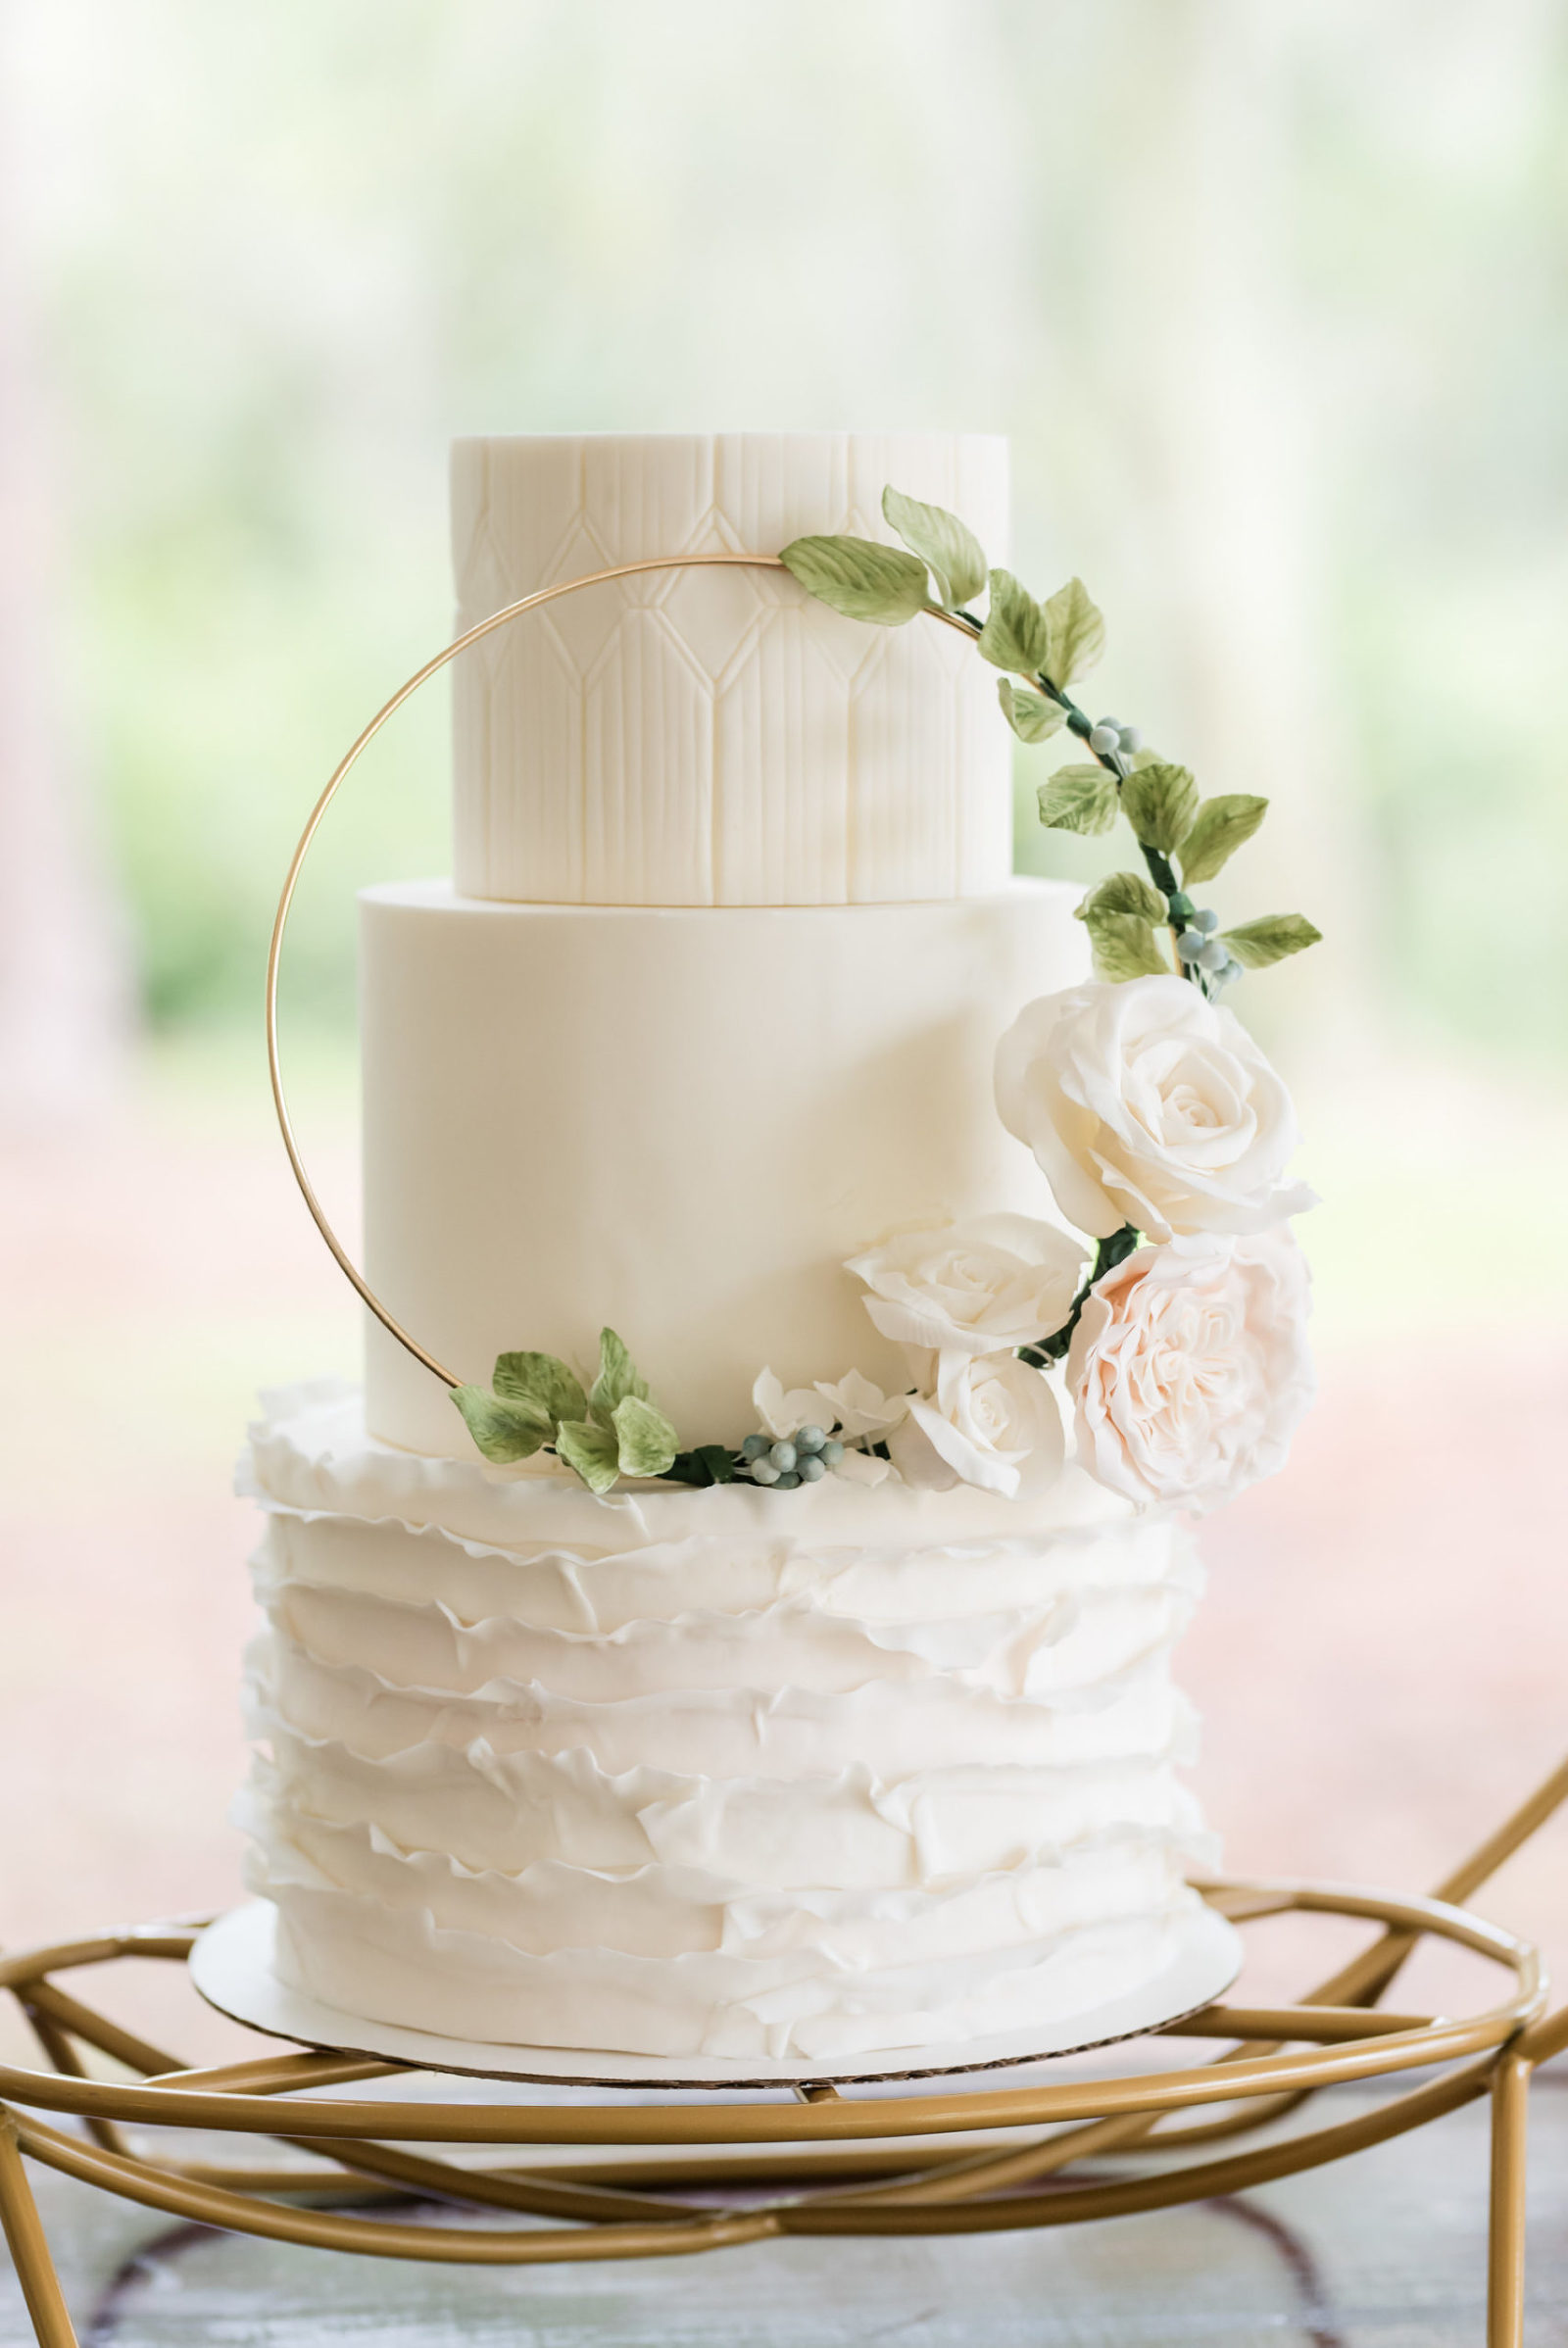 Dusty Rose Styled Wedding Shoot, Three Tier White Ruffled Bottom Tier Wedding Cake with Gold Circular Ornament with Greenery Leaves, Blush Pink and White Roses | Tampa Bay Wedding Planner Elegant Affairs by Design | Wedding Baker Tampa Bay Cake Company